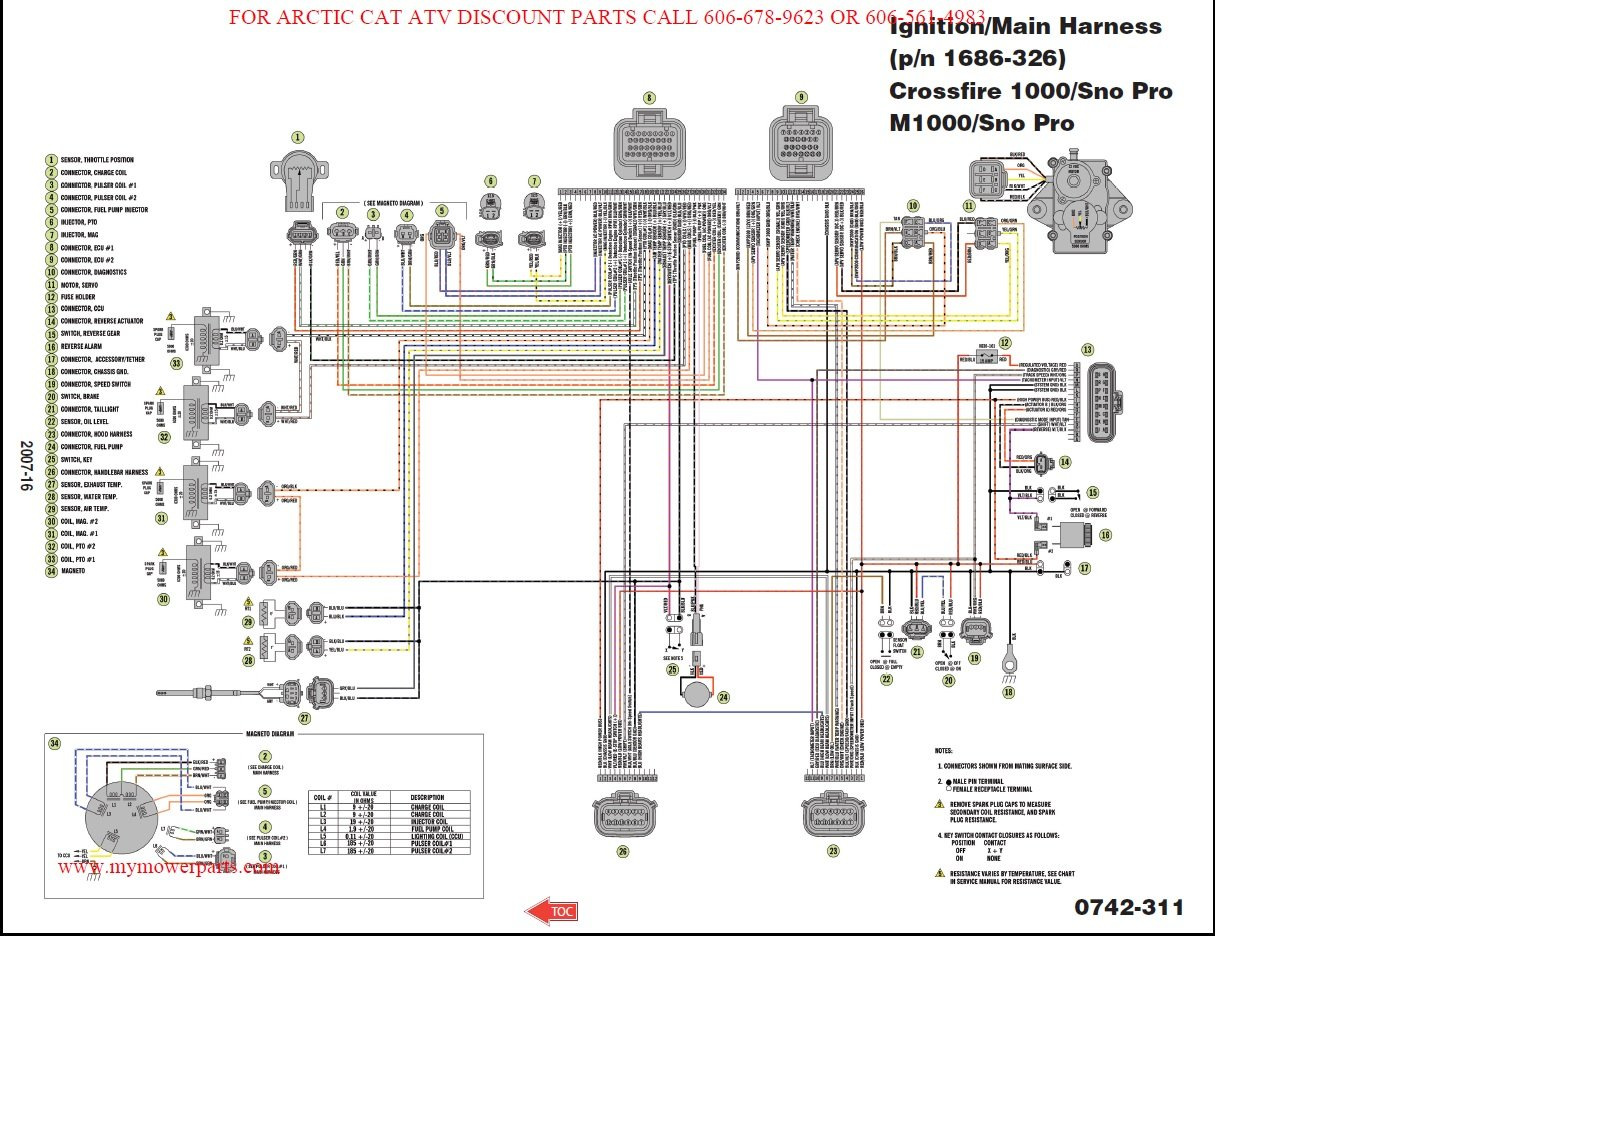 hight resolution of 08 prowler 650 arctic cat wiring diagram wiring diagram mix wiring diagram for 2008 prowler 650